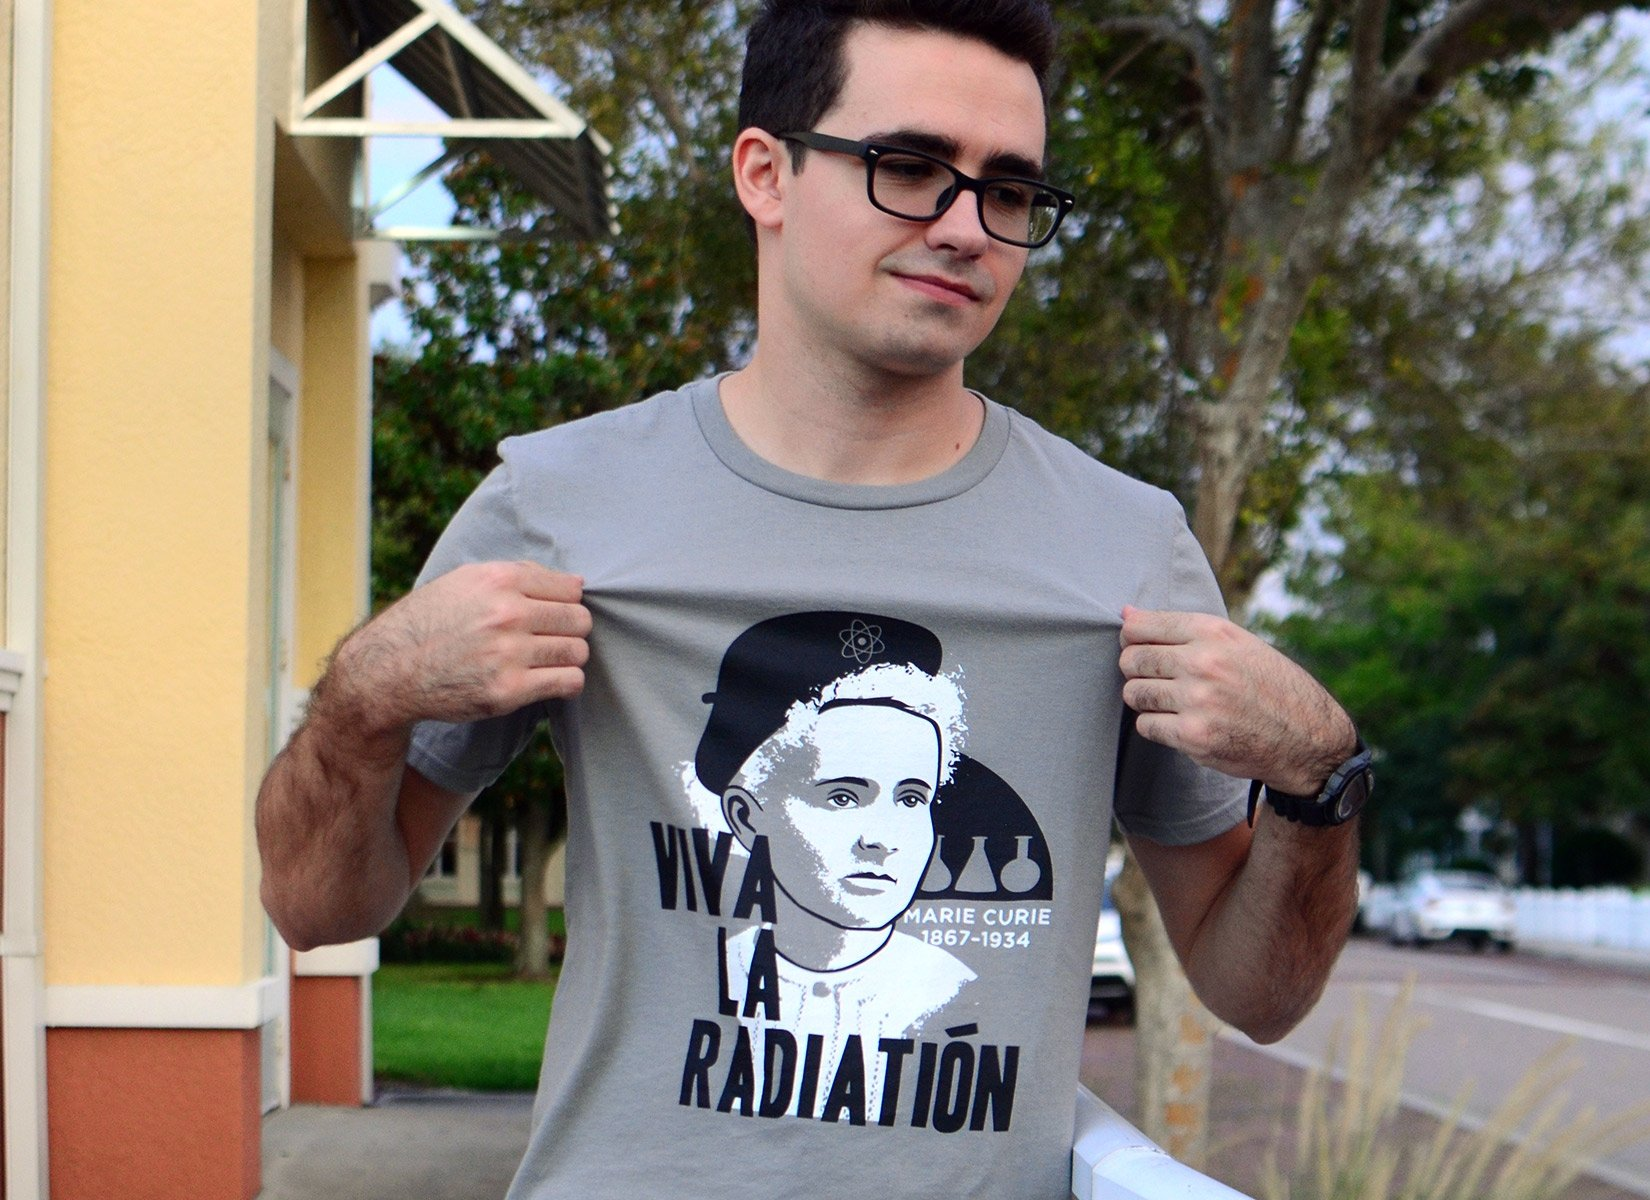 Viva La Radiation on Mens T-Shirt